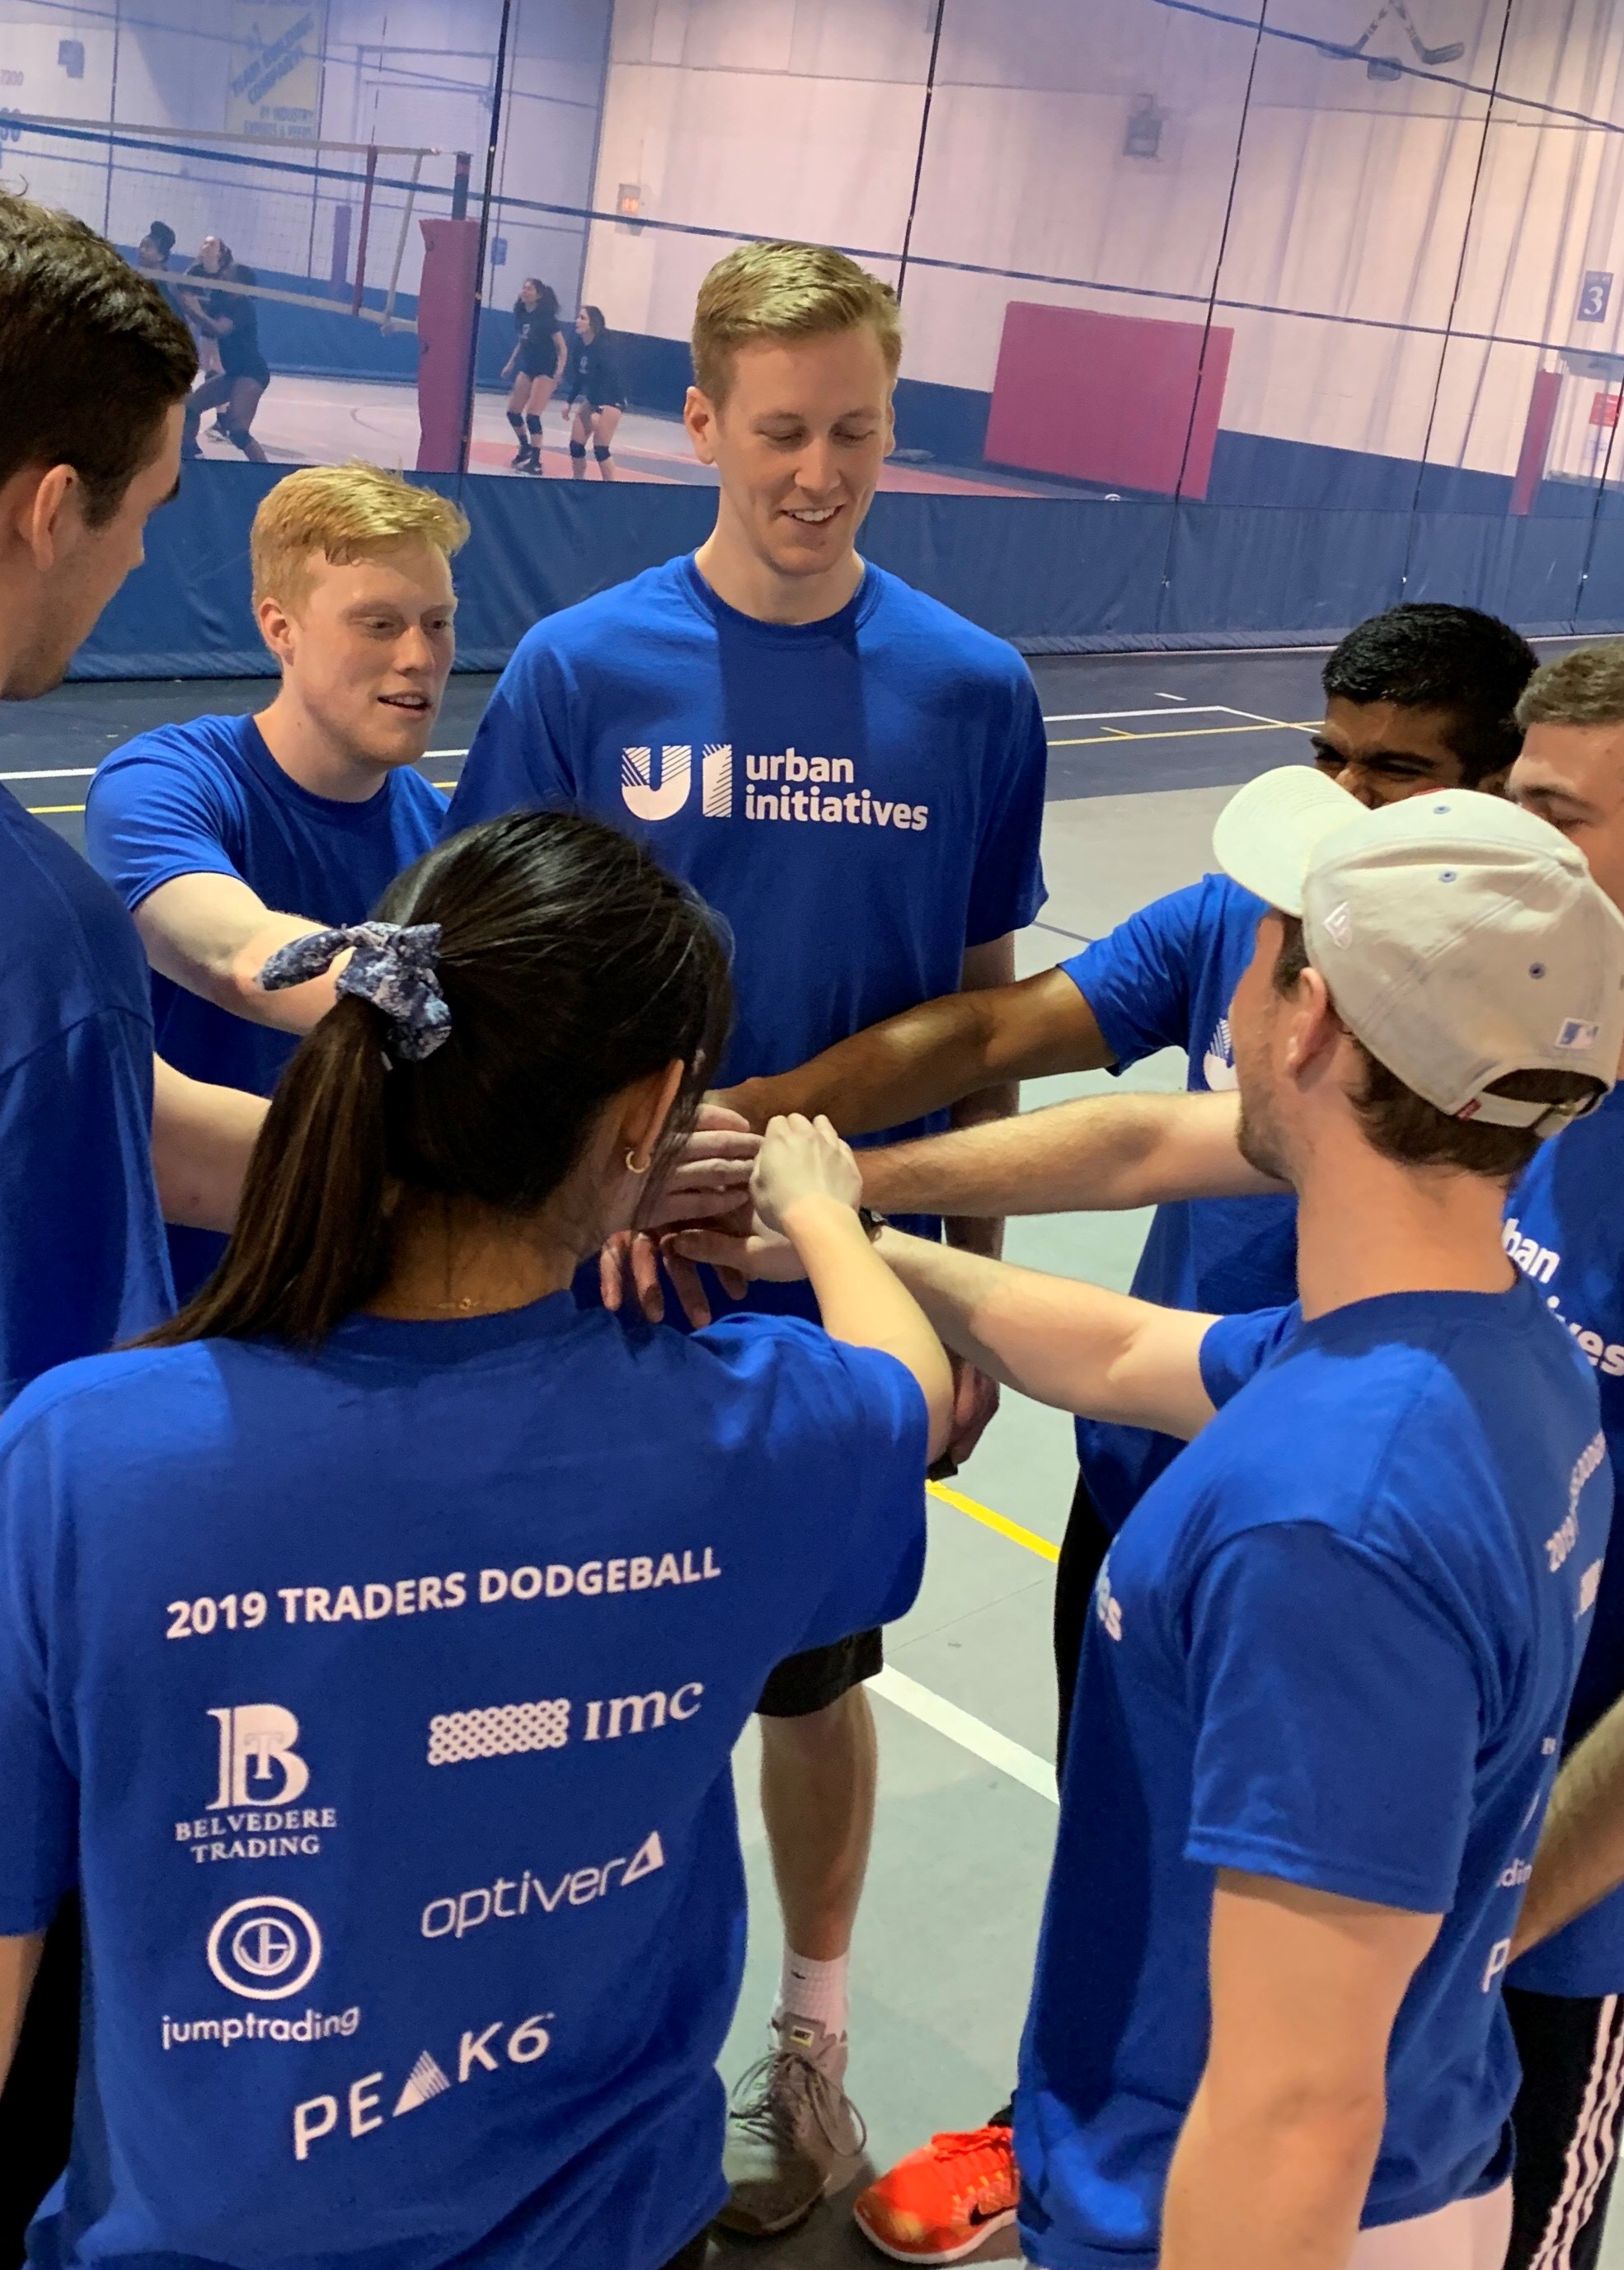 Team Belvedere with hands in the center of a huddle wearing Urban Initiatives t-shirts in preparation for a charity dodgeball tournament.